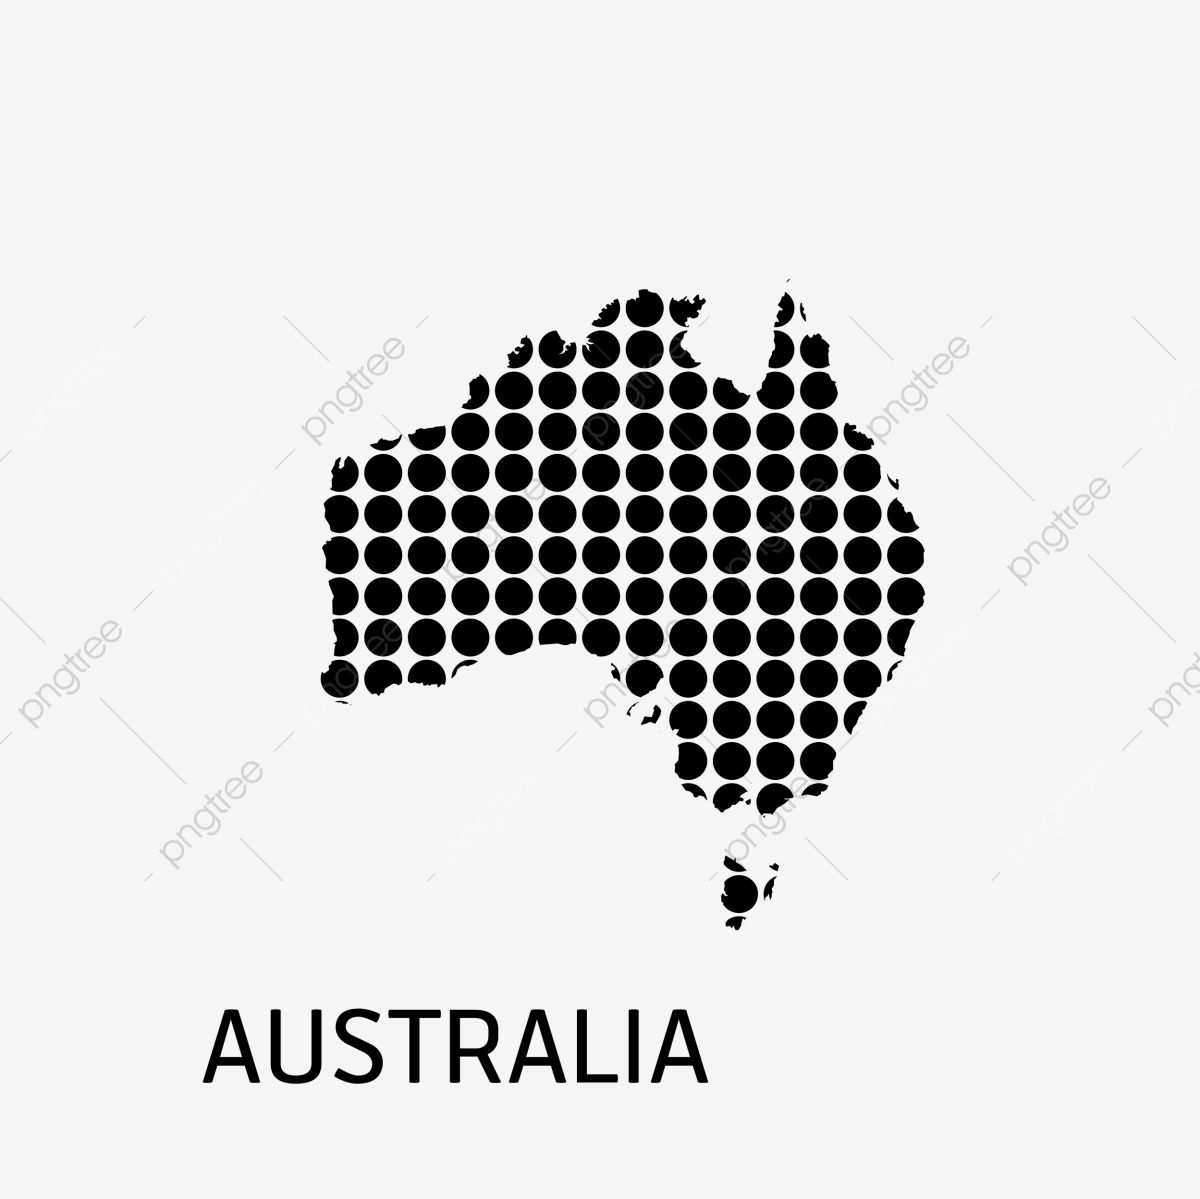 Australia Map Icon.Australia Map Icon Australia Map World Png And Vector